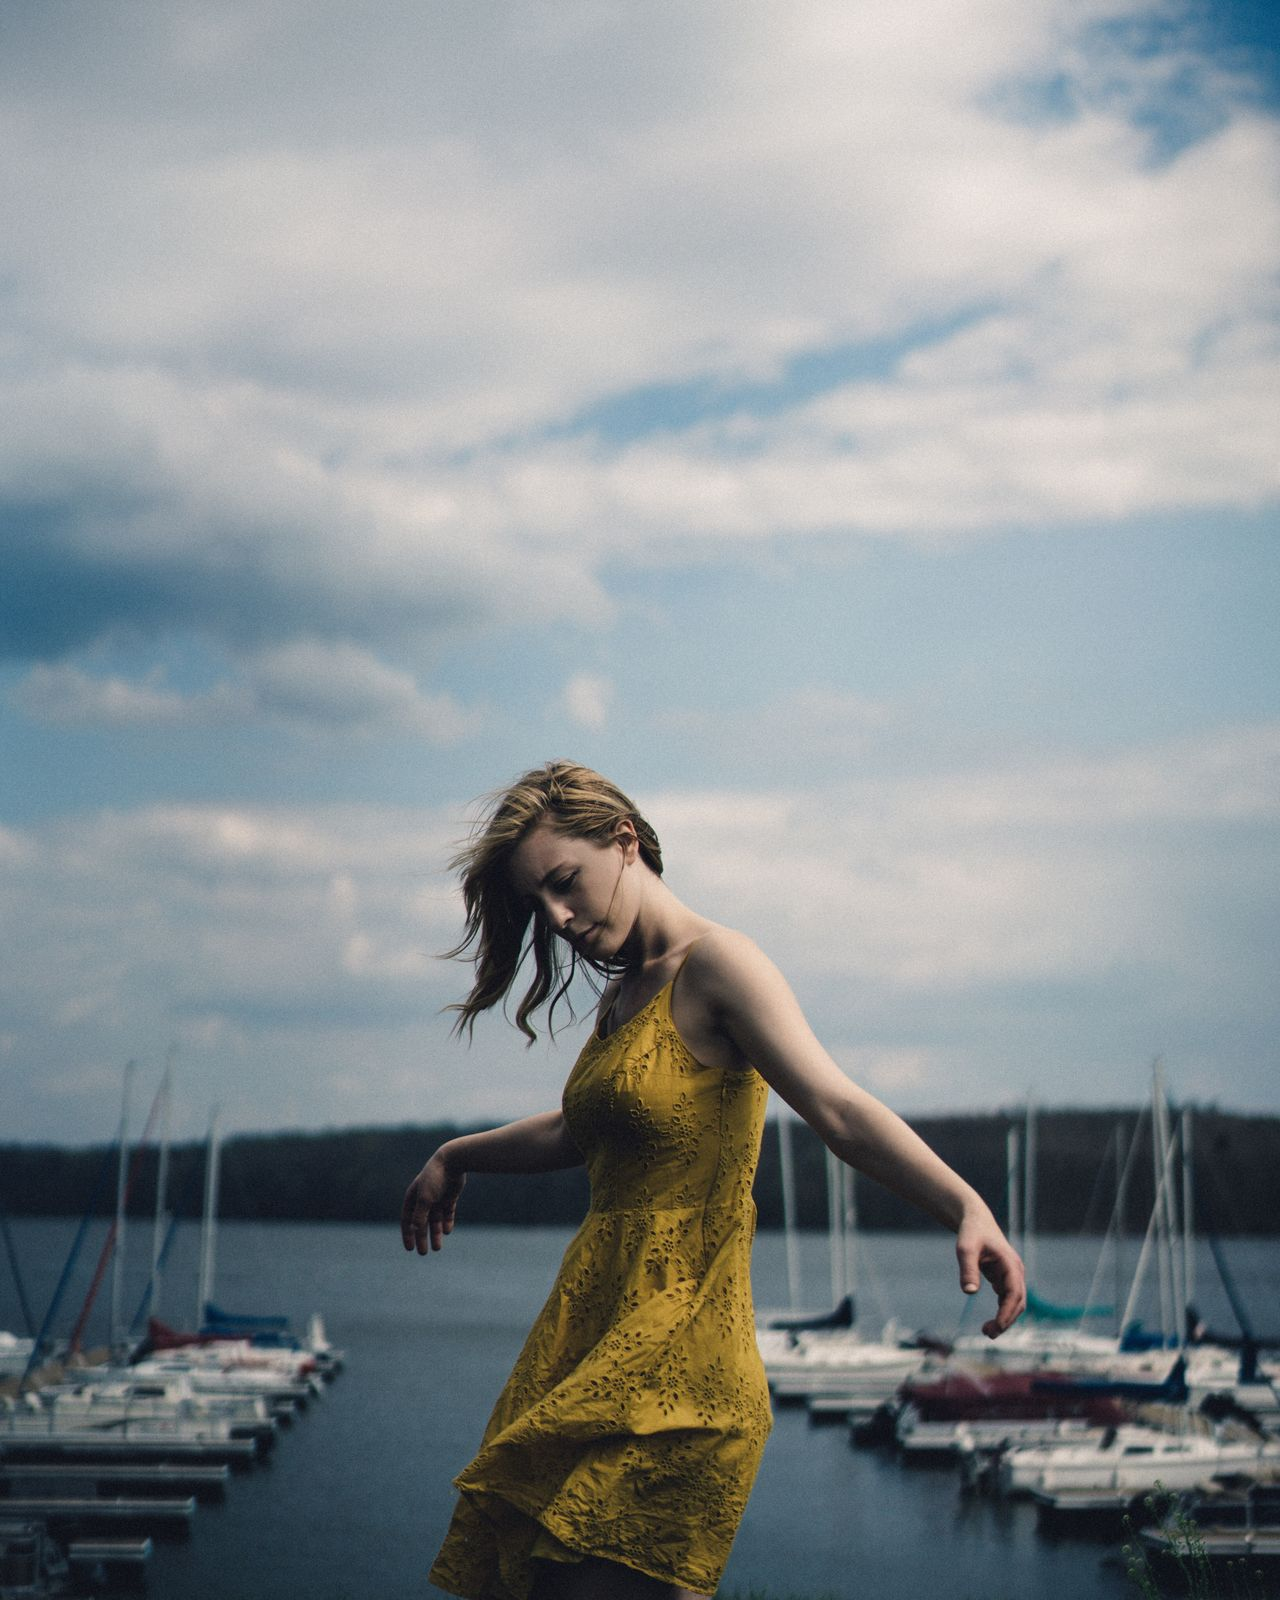 Water Sky Transportation Nautical Vessel Real People Mode Of Transport One Person Cloud - Sky Leisure Activity Outdoors Sea Standing Lifestyles Casual Clothing Day Young Adult Moored Nature Young Women People Spring April May Art Is Everywhere EyeEm Diversity